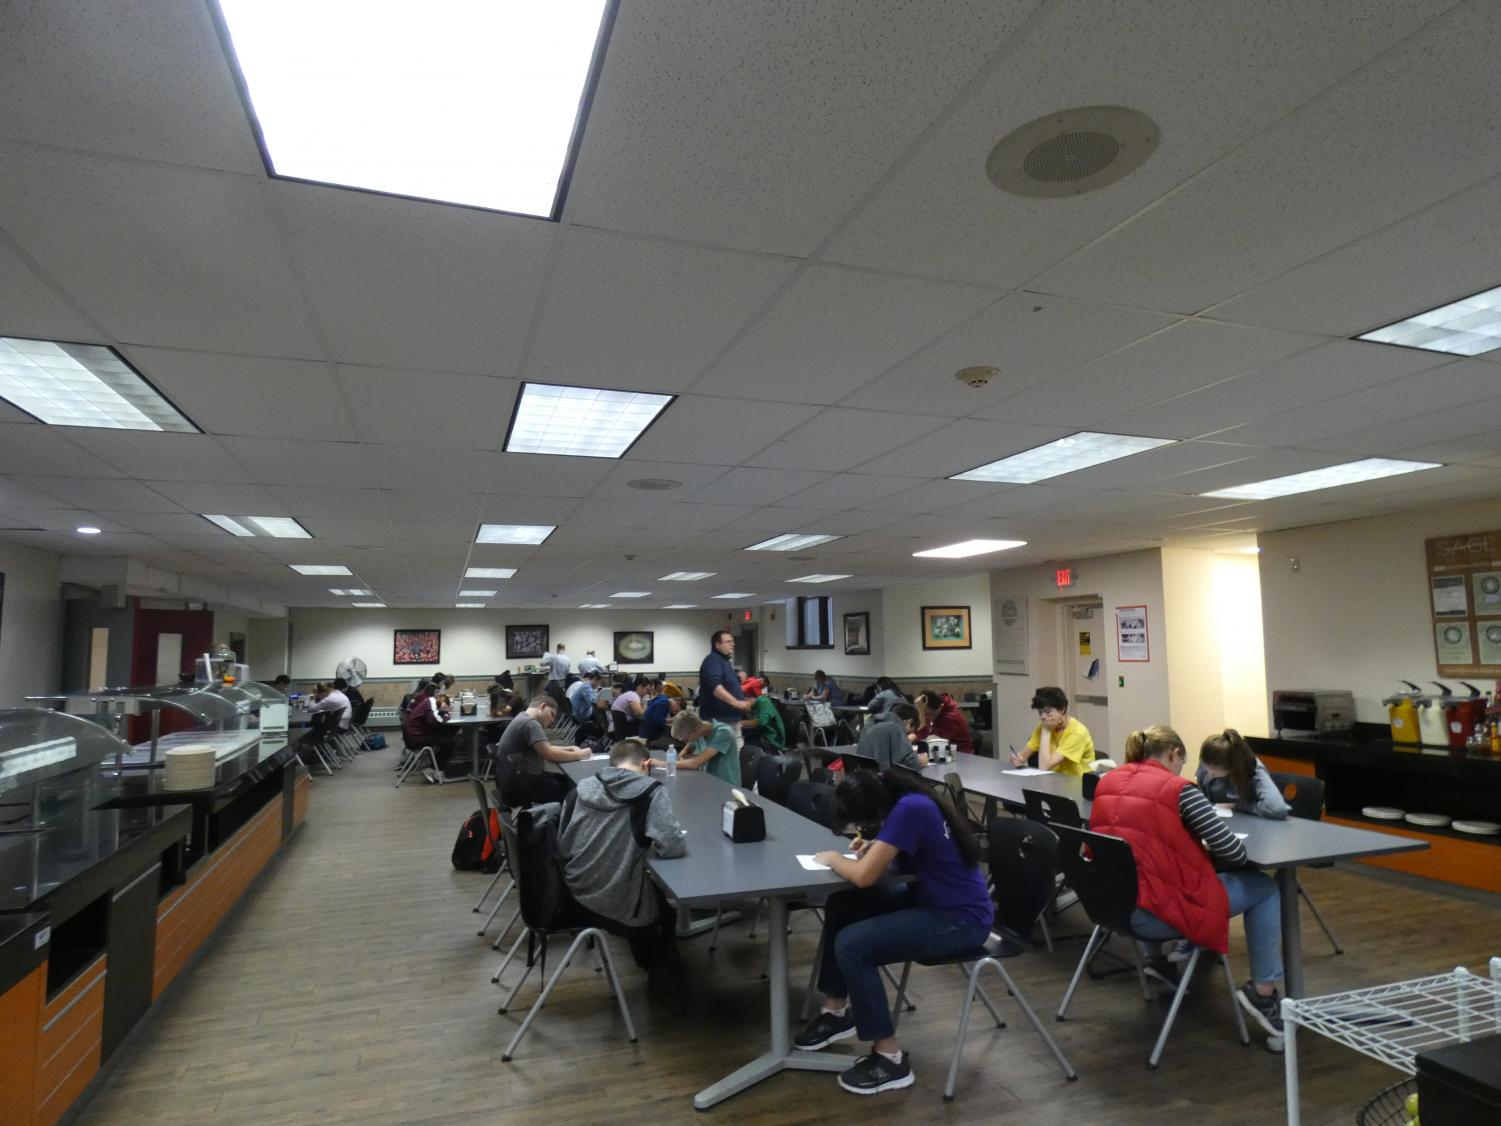 Students answer problems during the WMML meet held in the MacDuffie cafeteria in the fall.